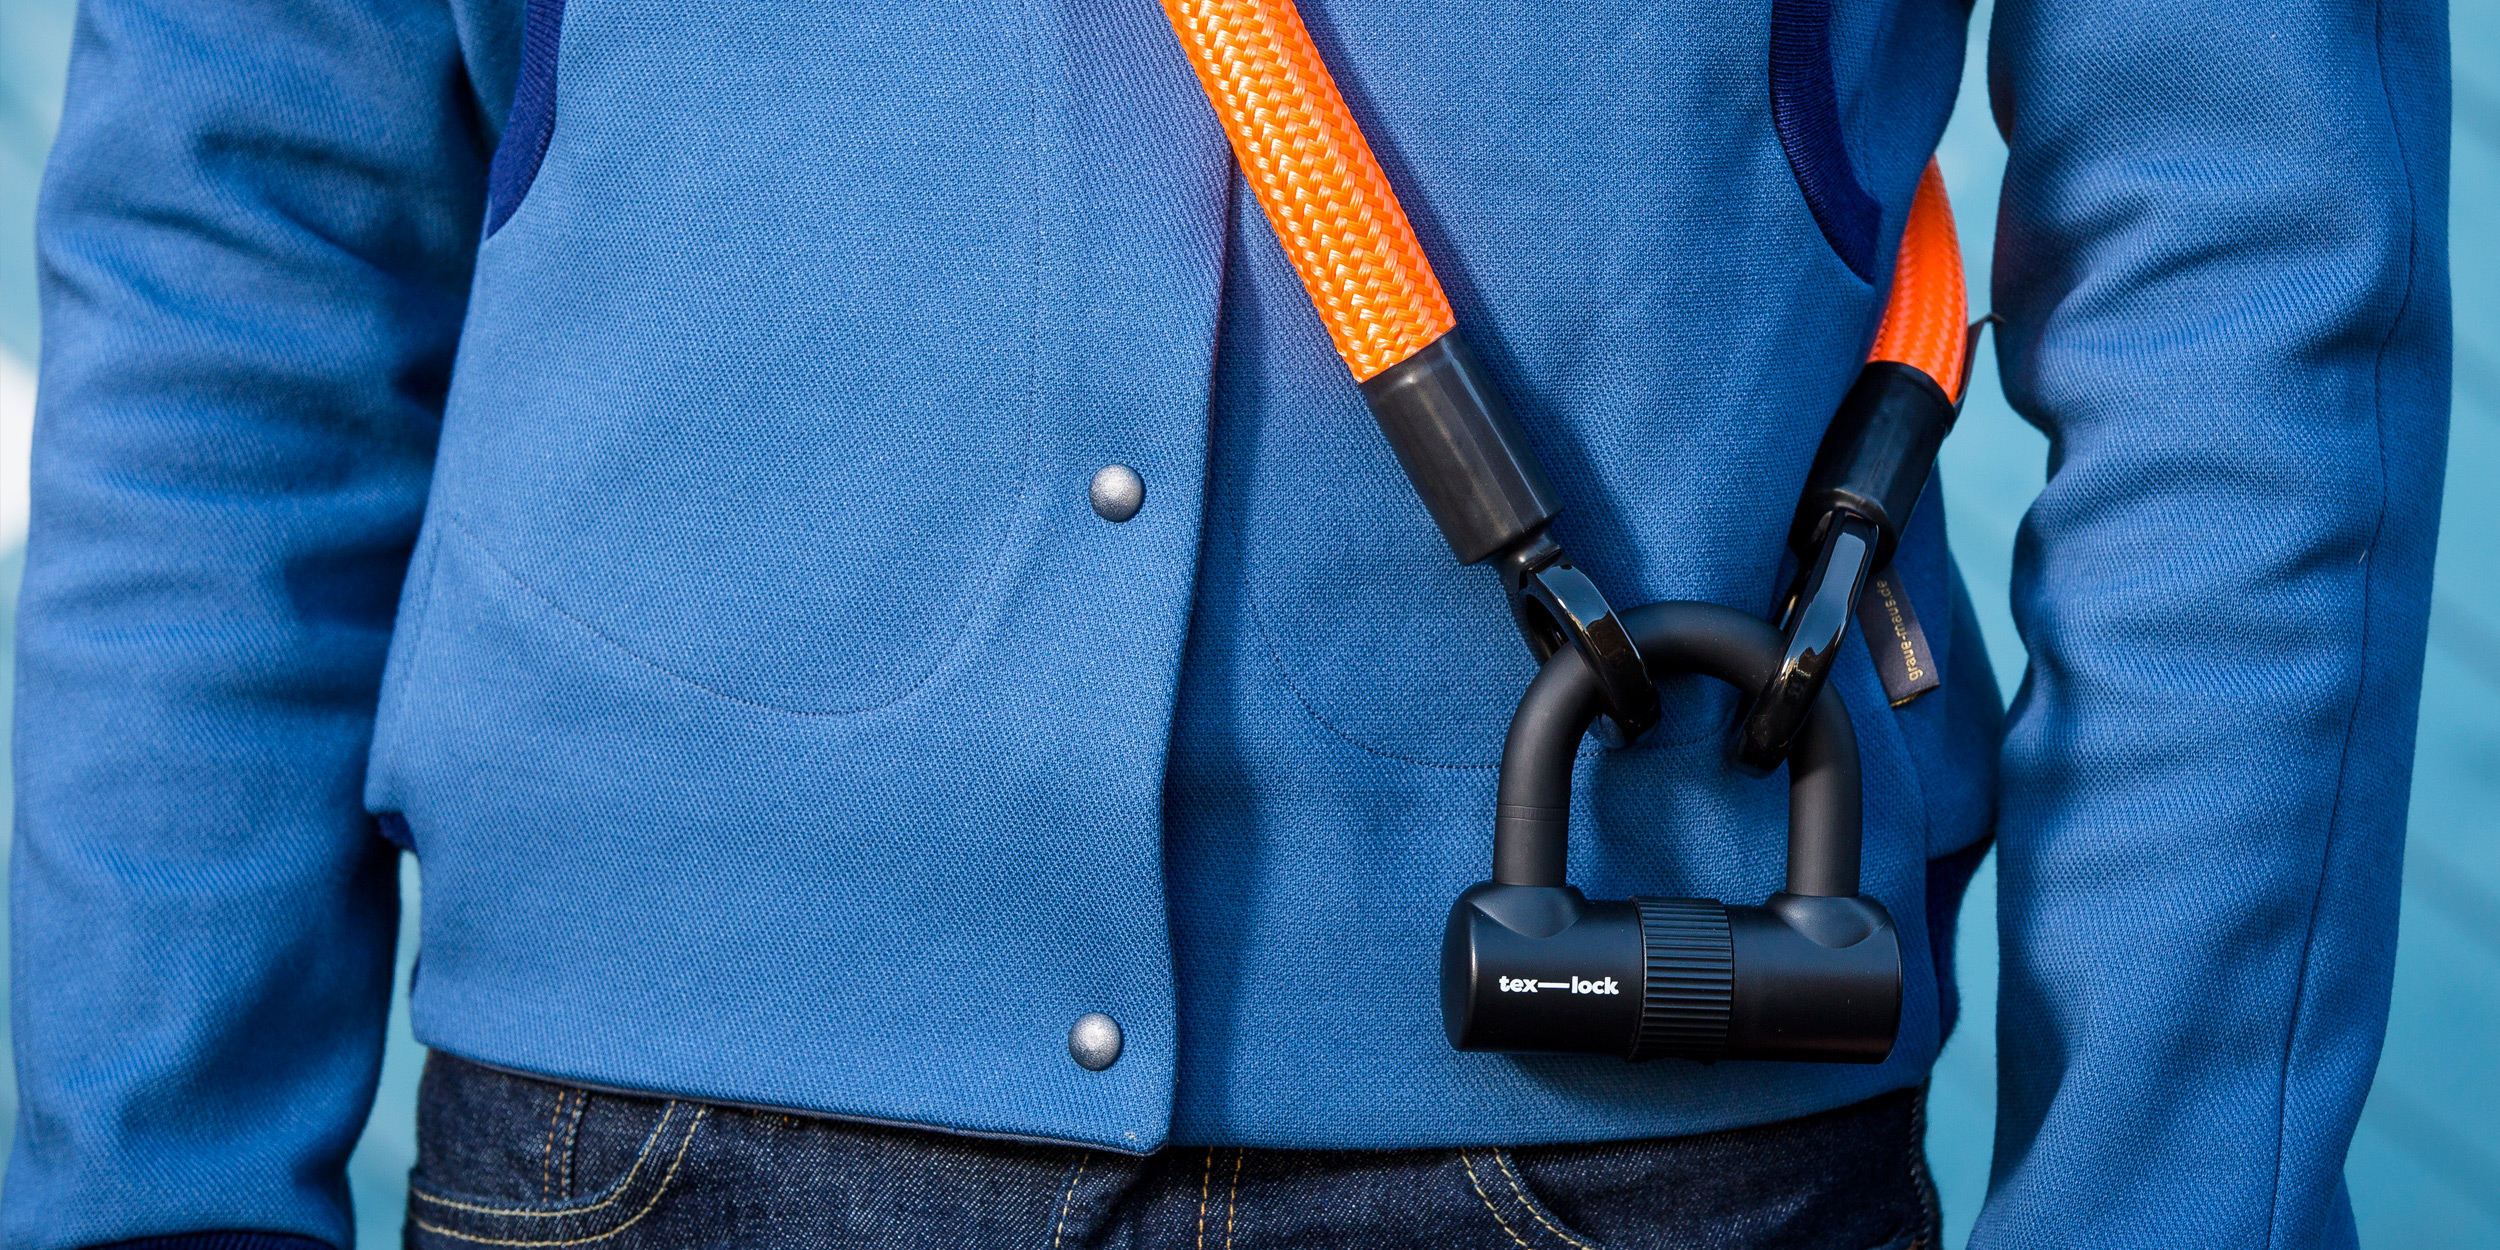 order the new textile bike lock now in our online shop!